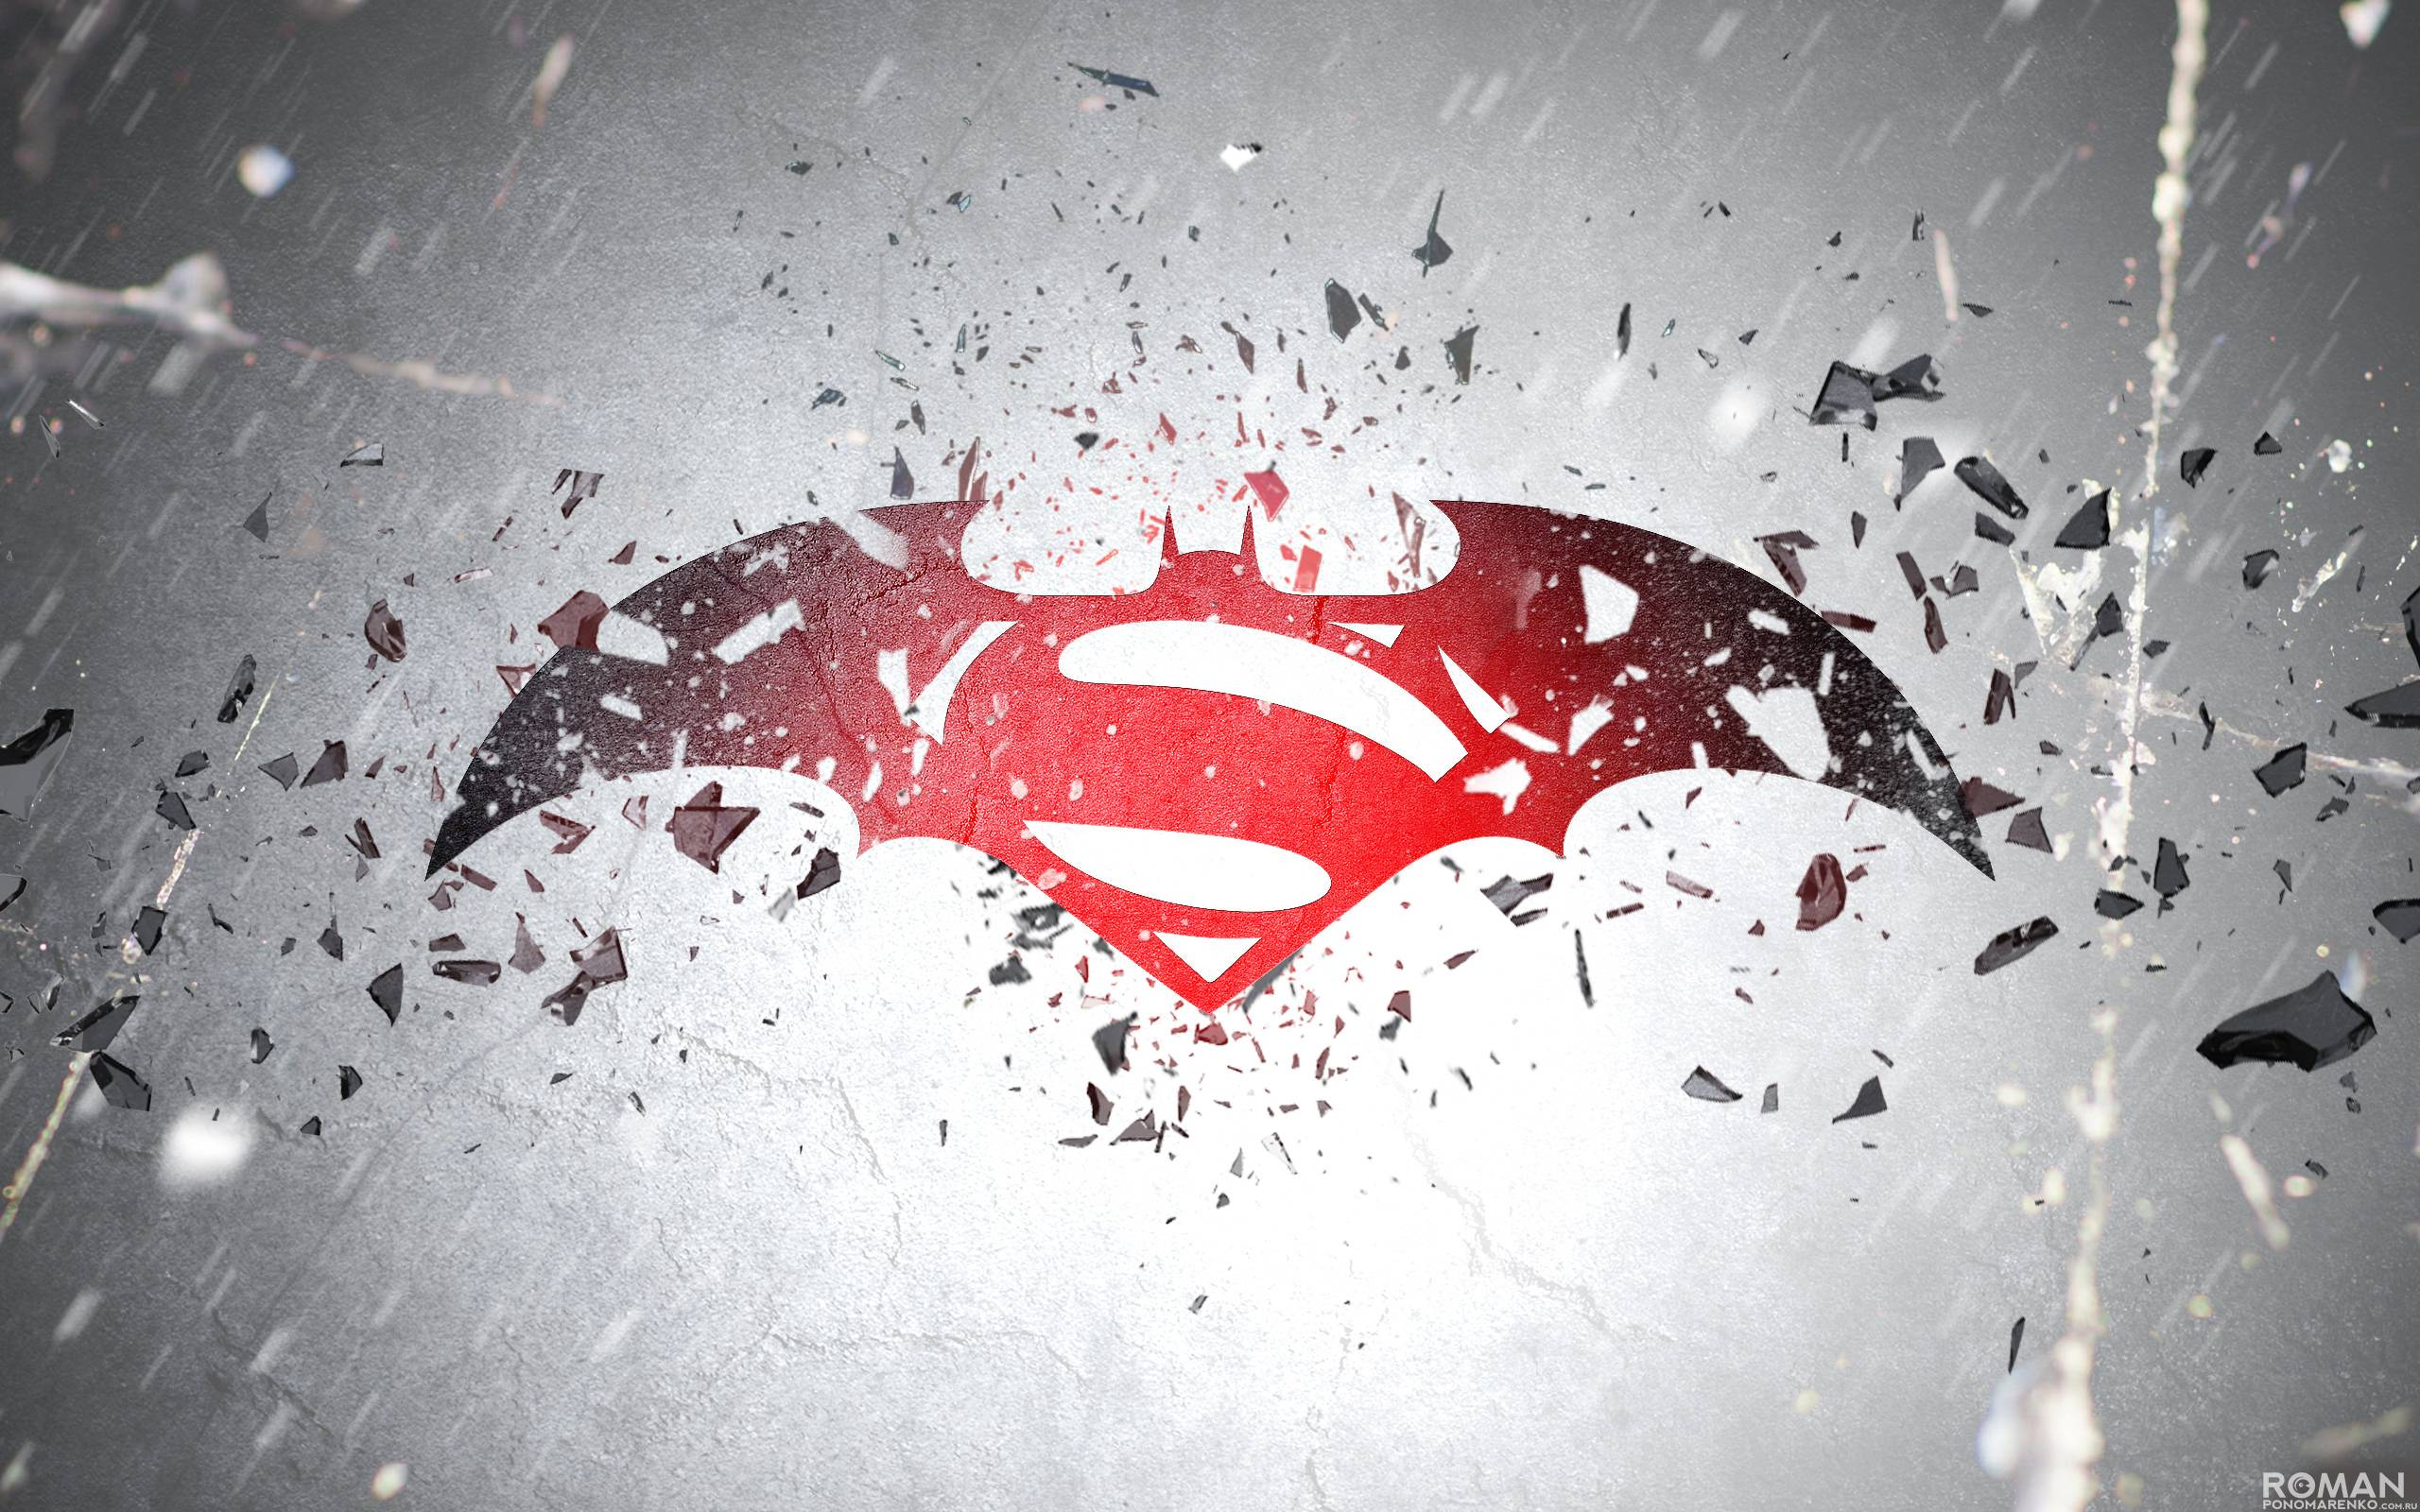 Batman Vs Superman Wallpapers Download F99X5GE   4USkY 2560x1600